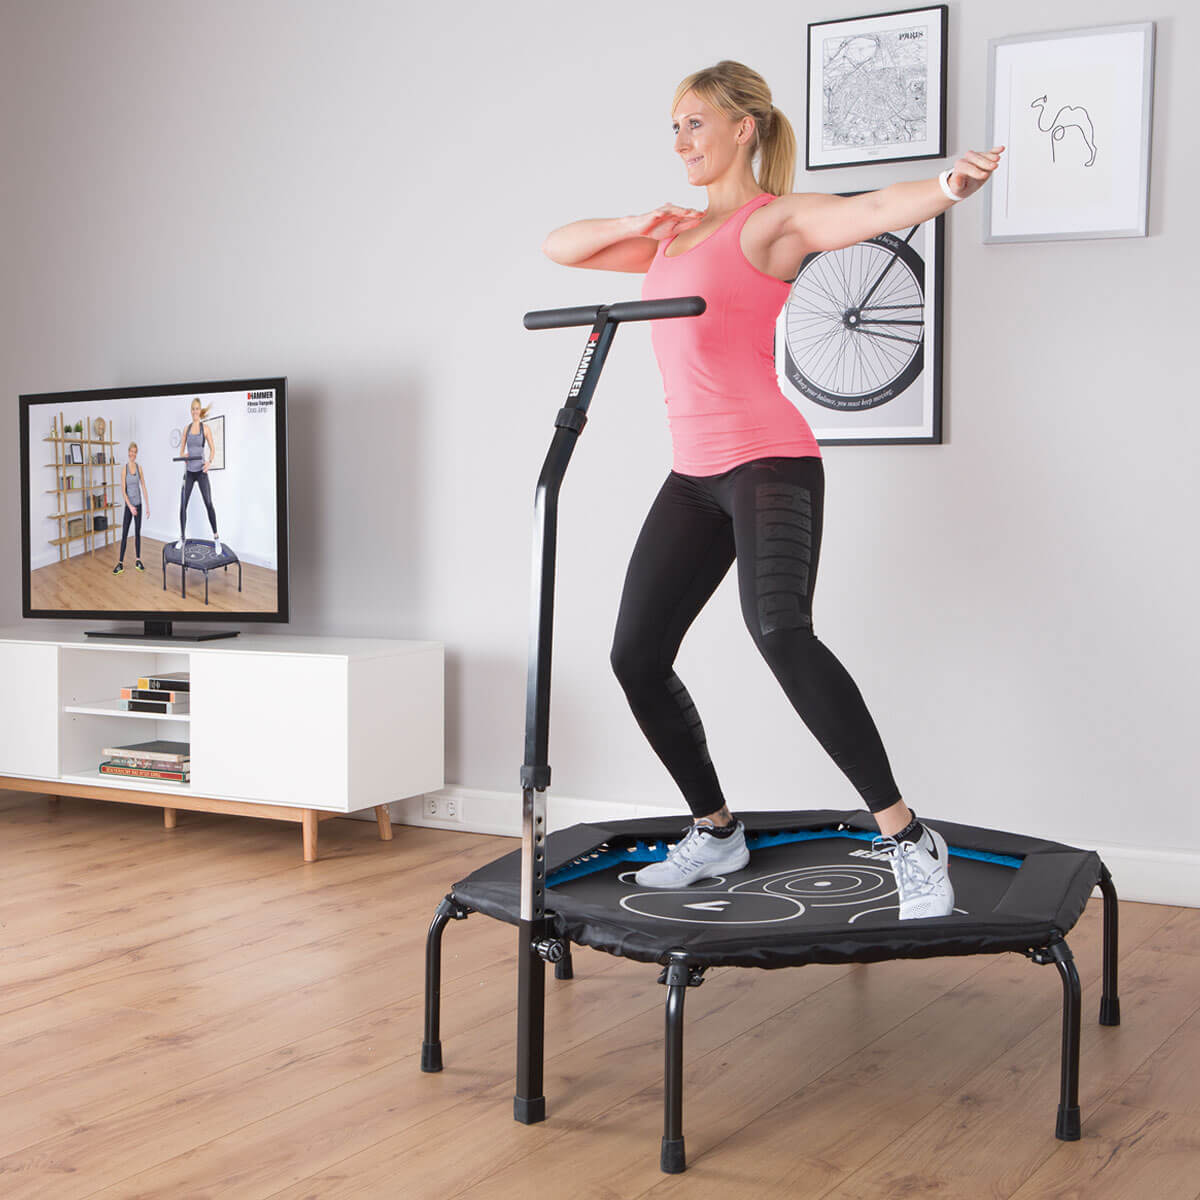 Image result for trampoline exercise